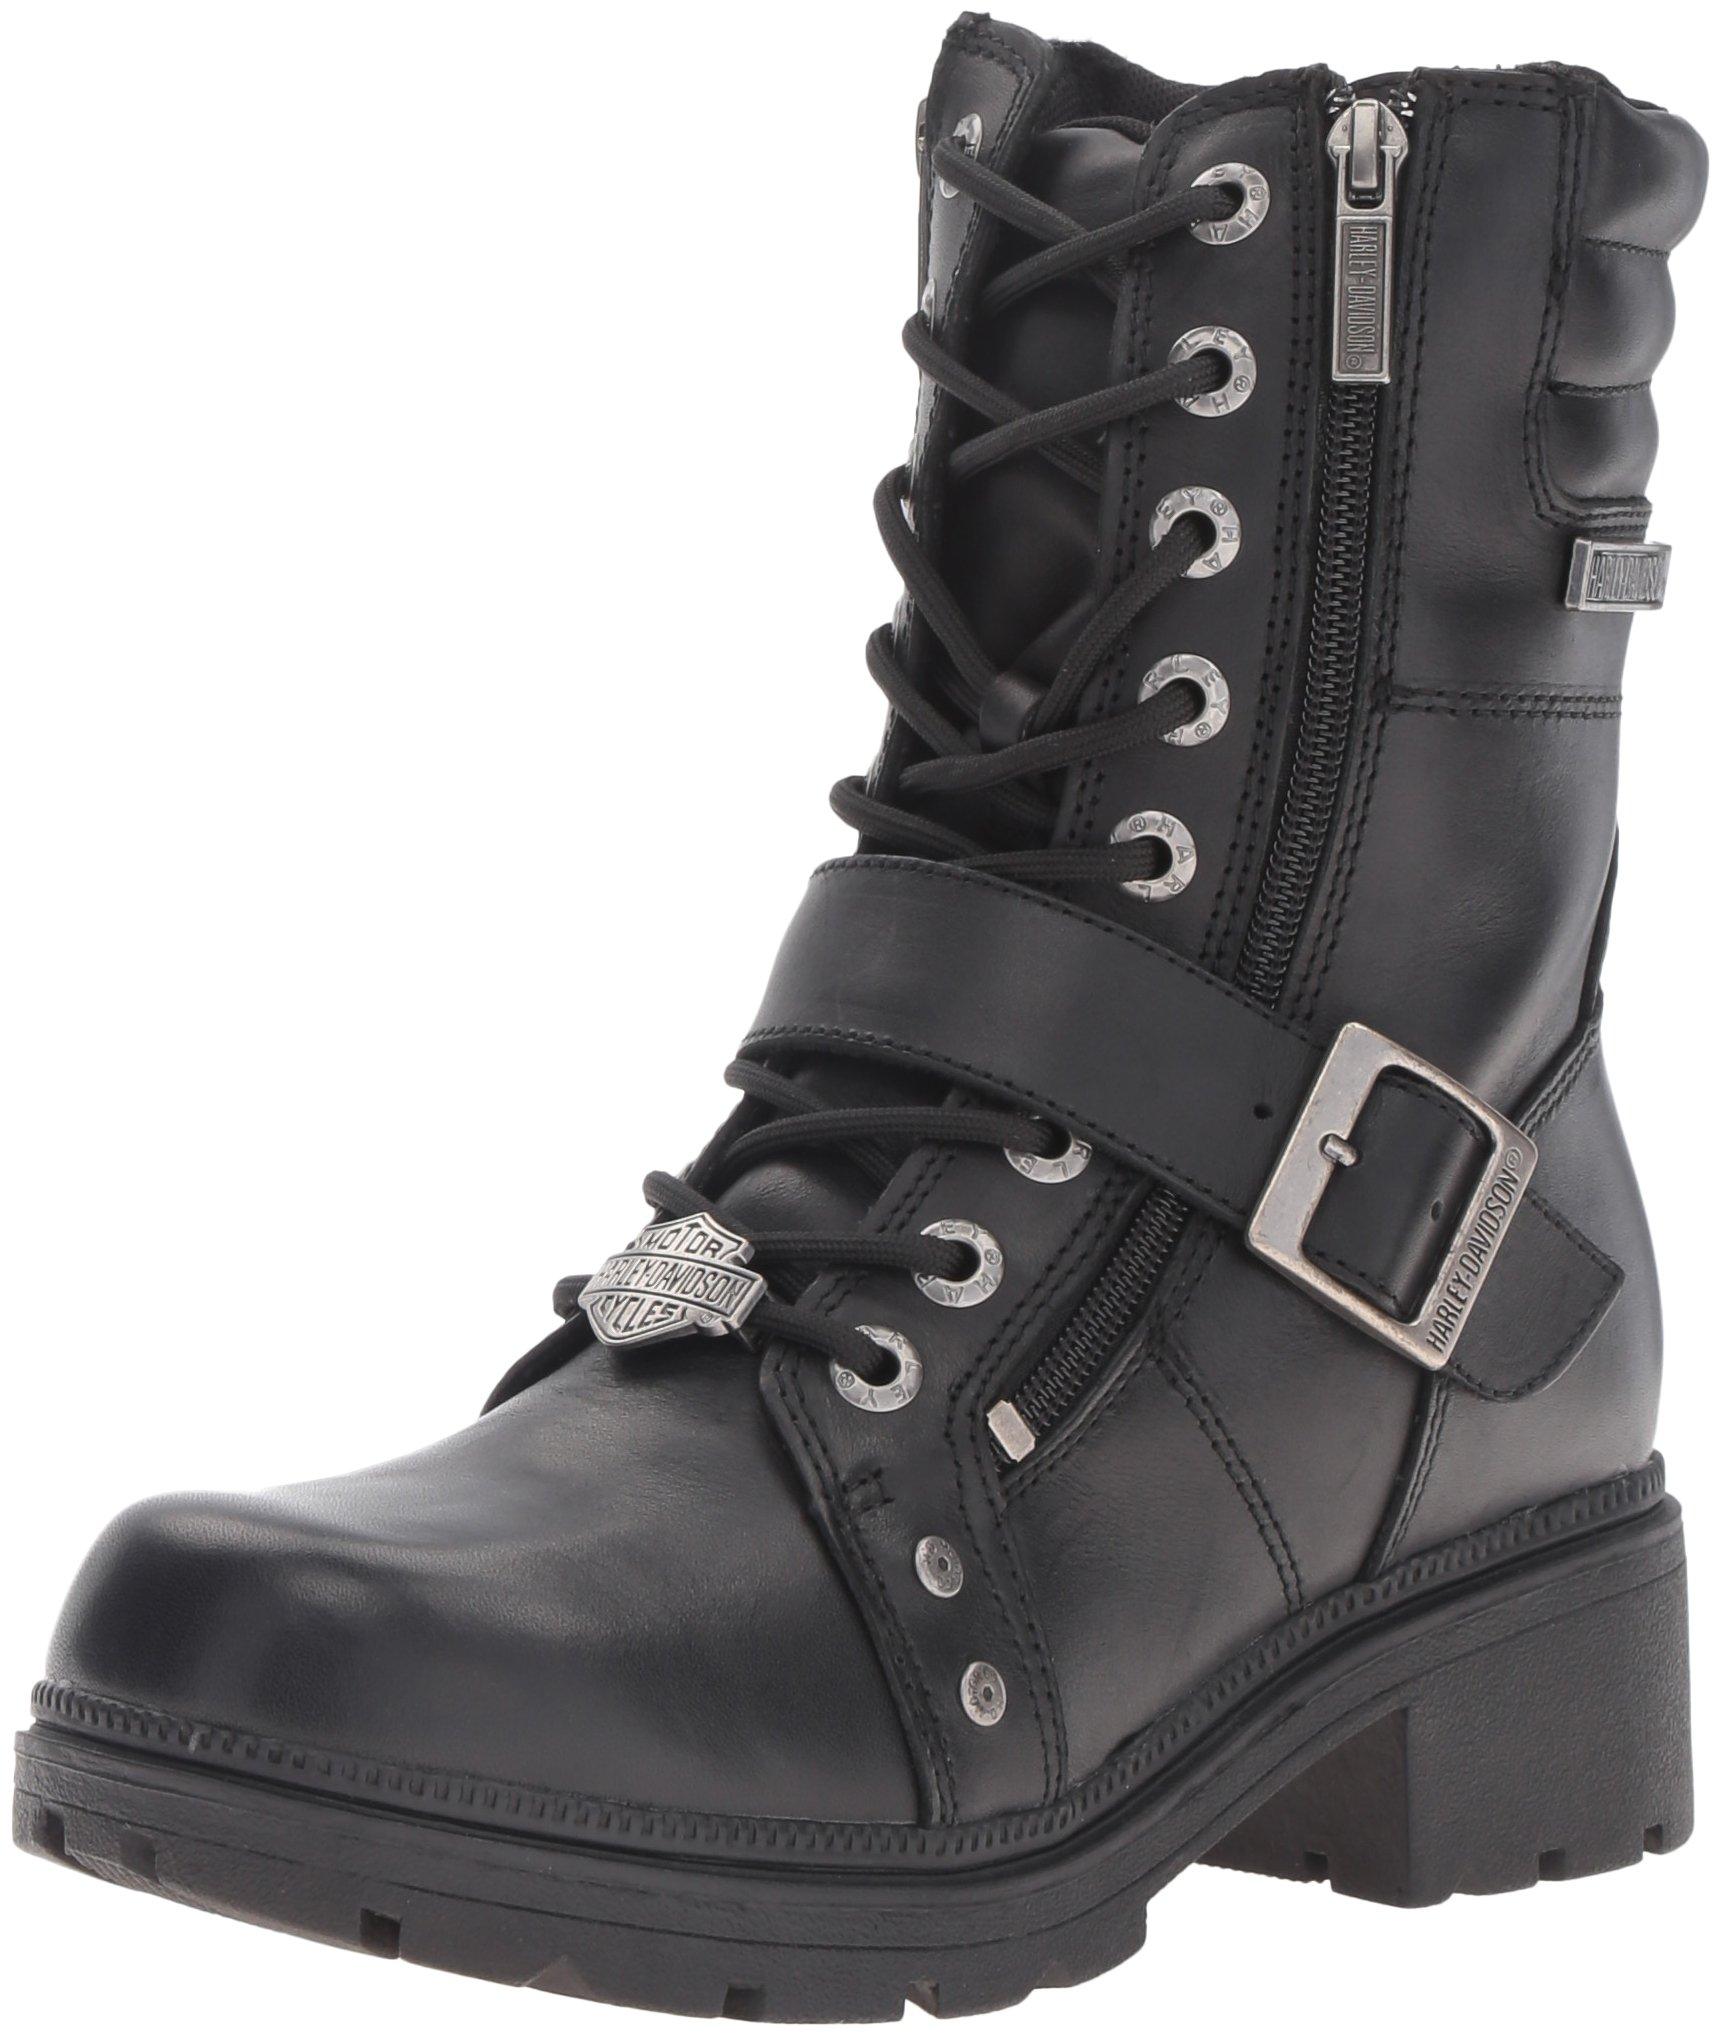 Harley-Davidson Women's Talley Ridge Motorcycle Boot, Black, 7 M US